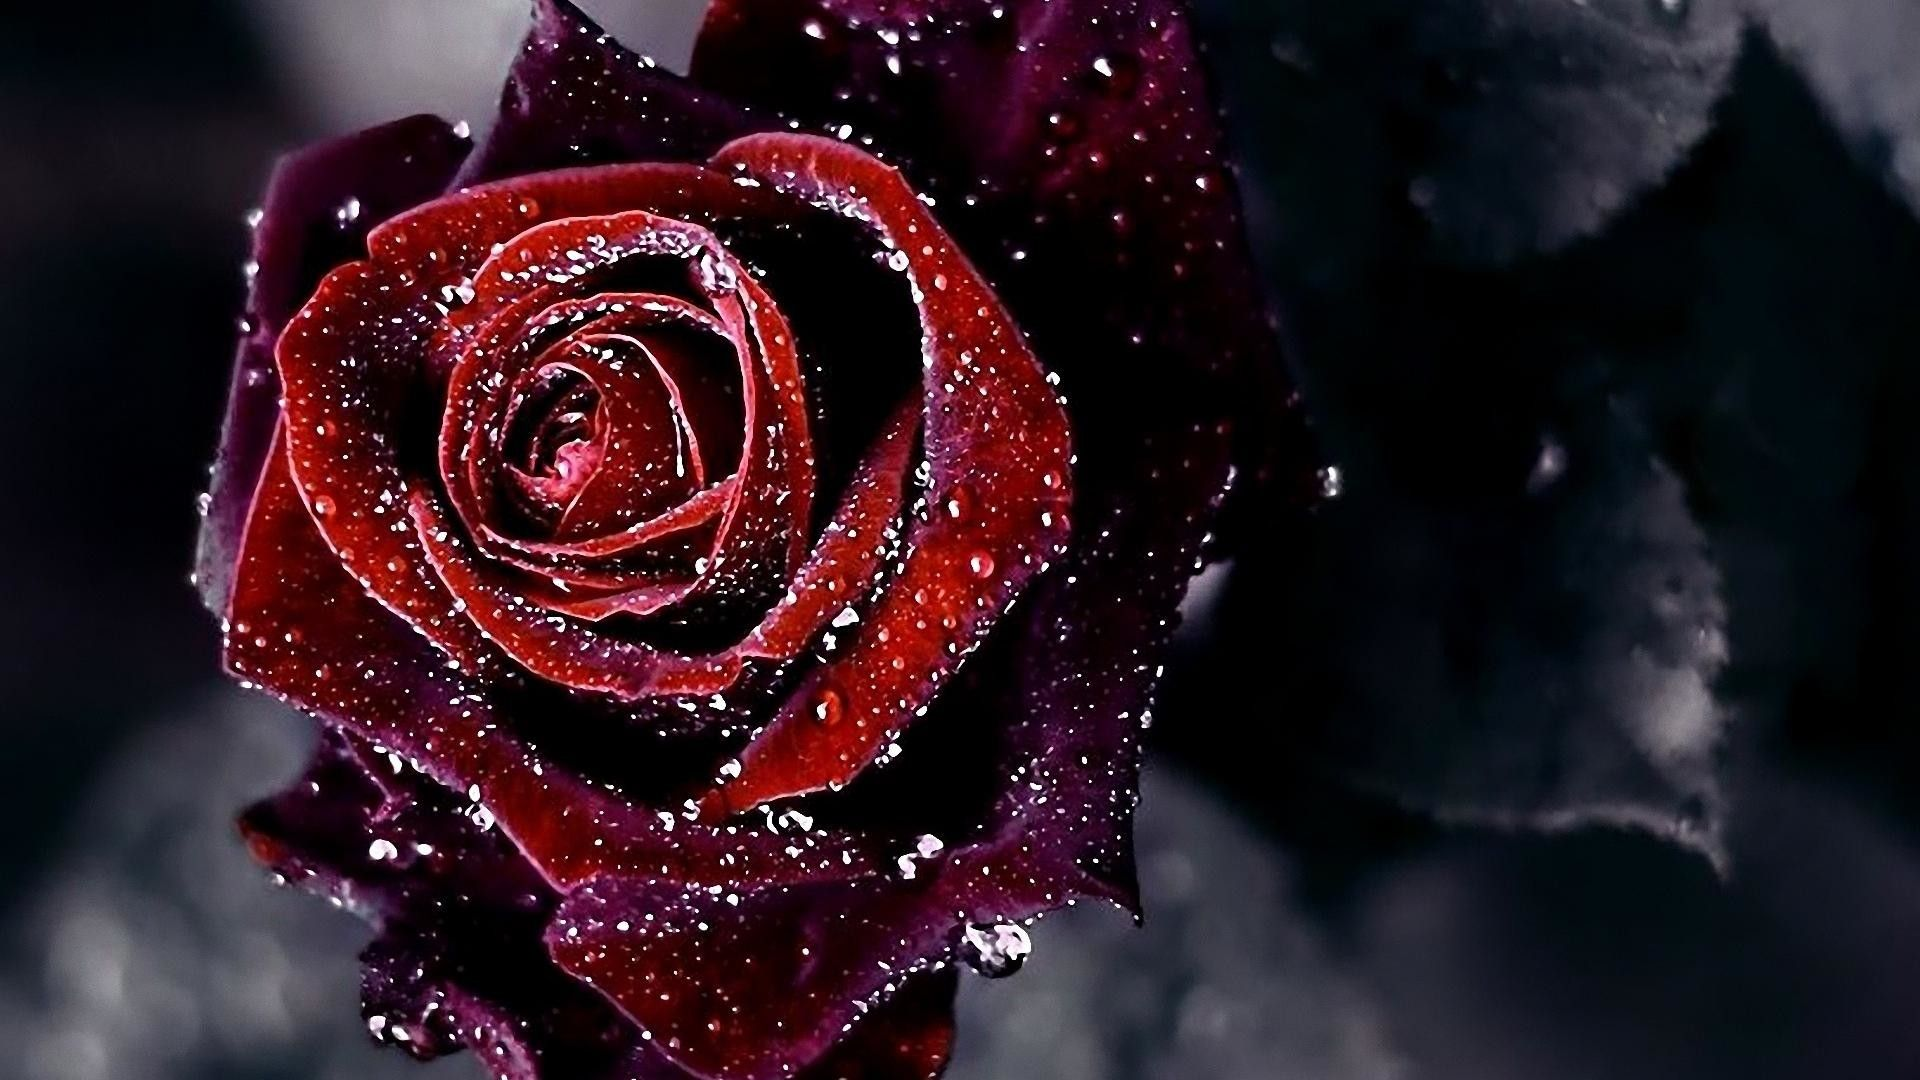 1920x1080 Black and Red Rose Wallpaper (63+ images)